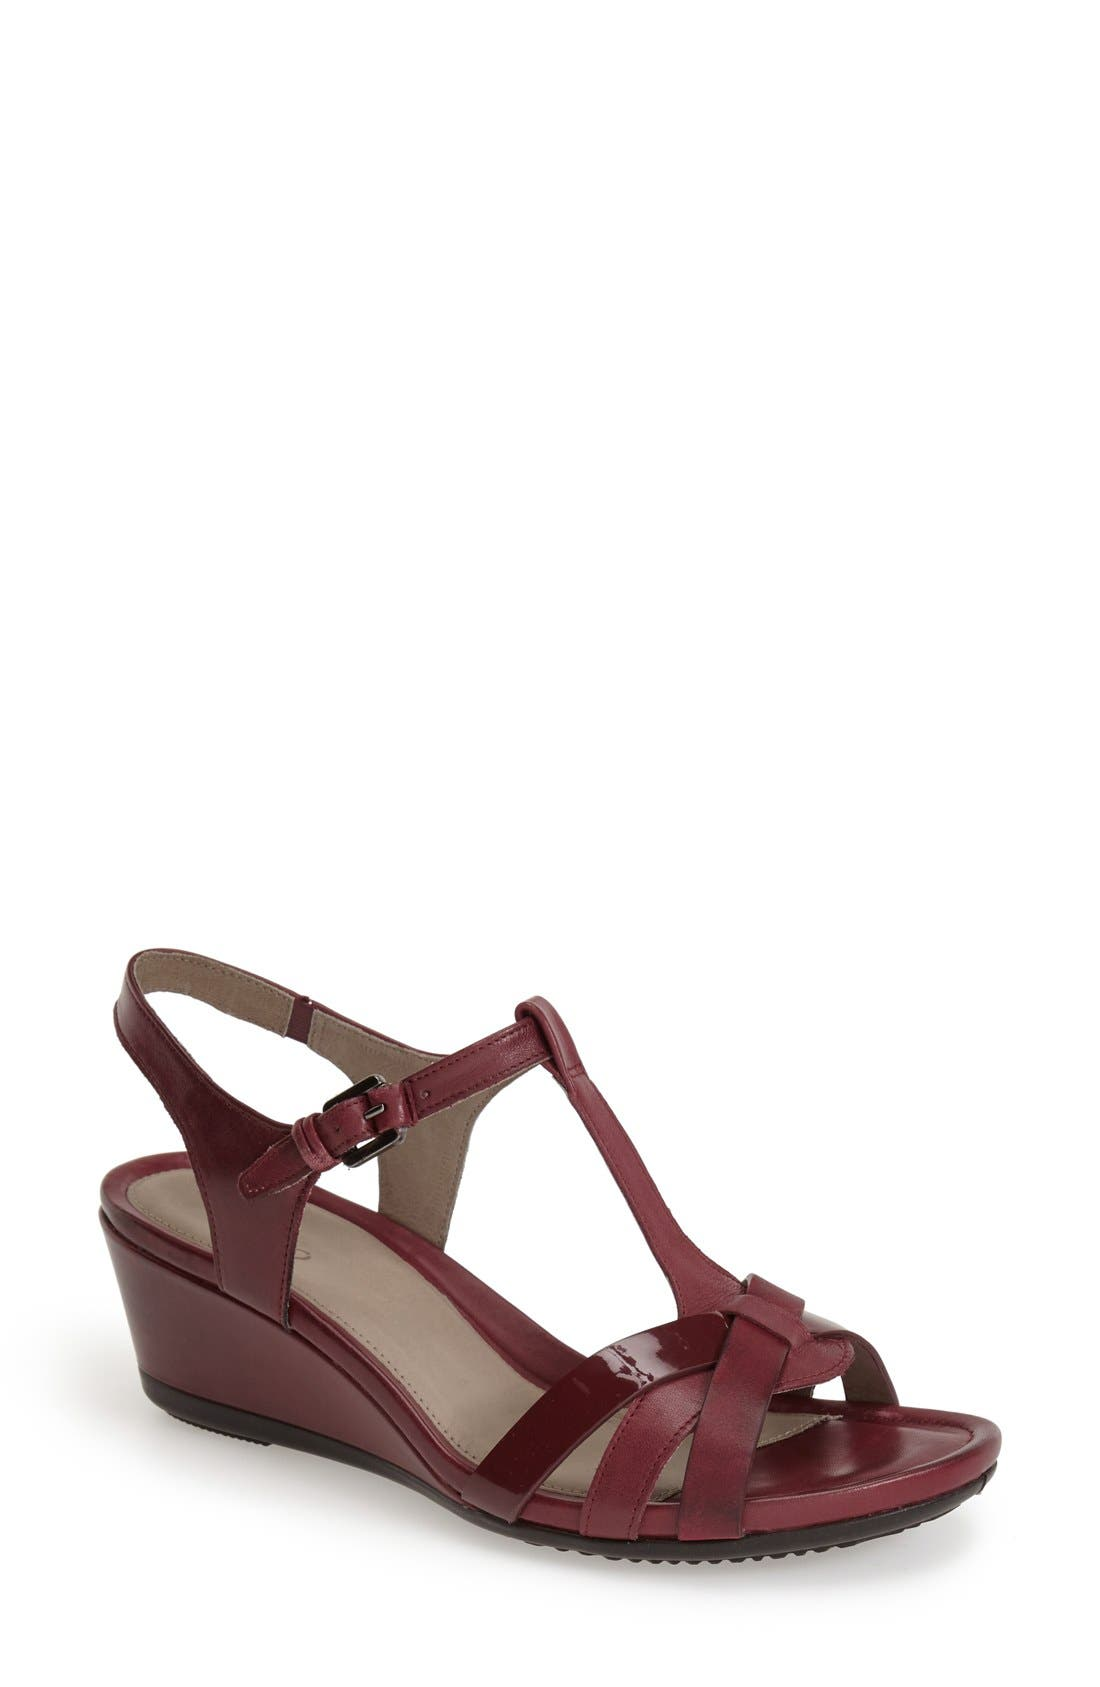 Alternate Image 1 Selected - ECCO 'Touch 45' T-Strap Wedge Sandal (Women)